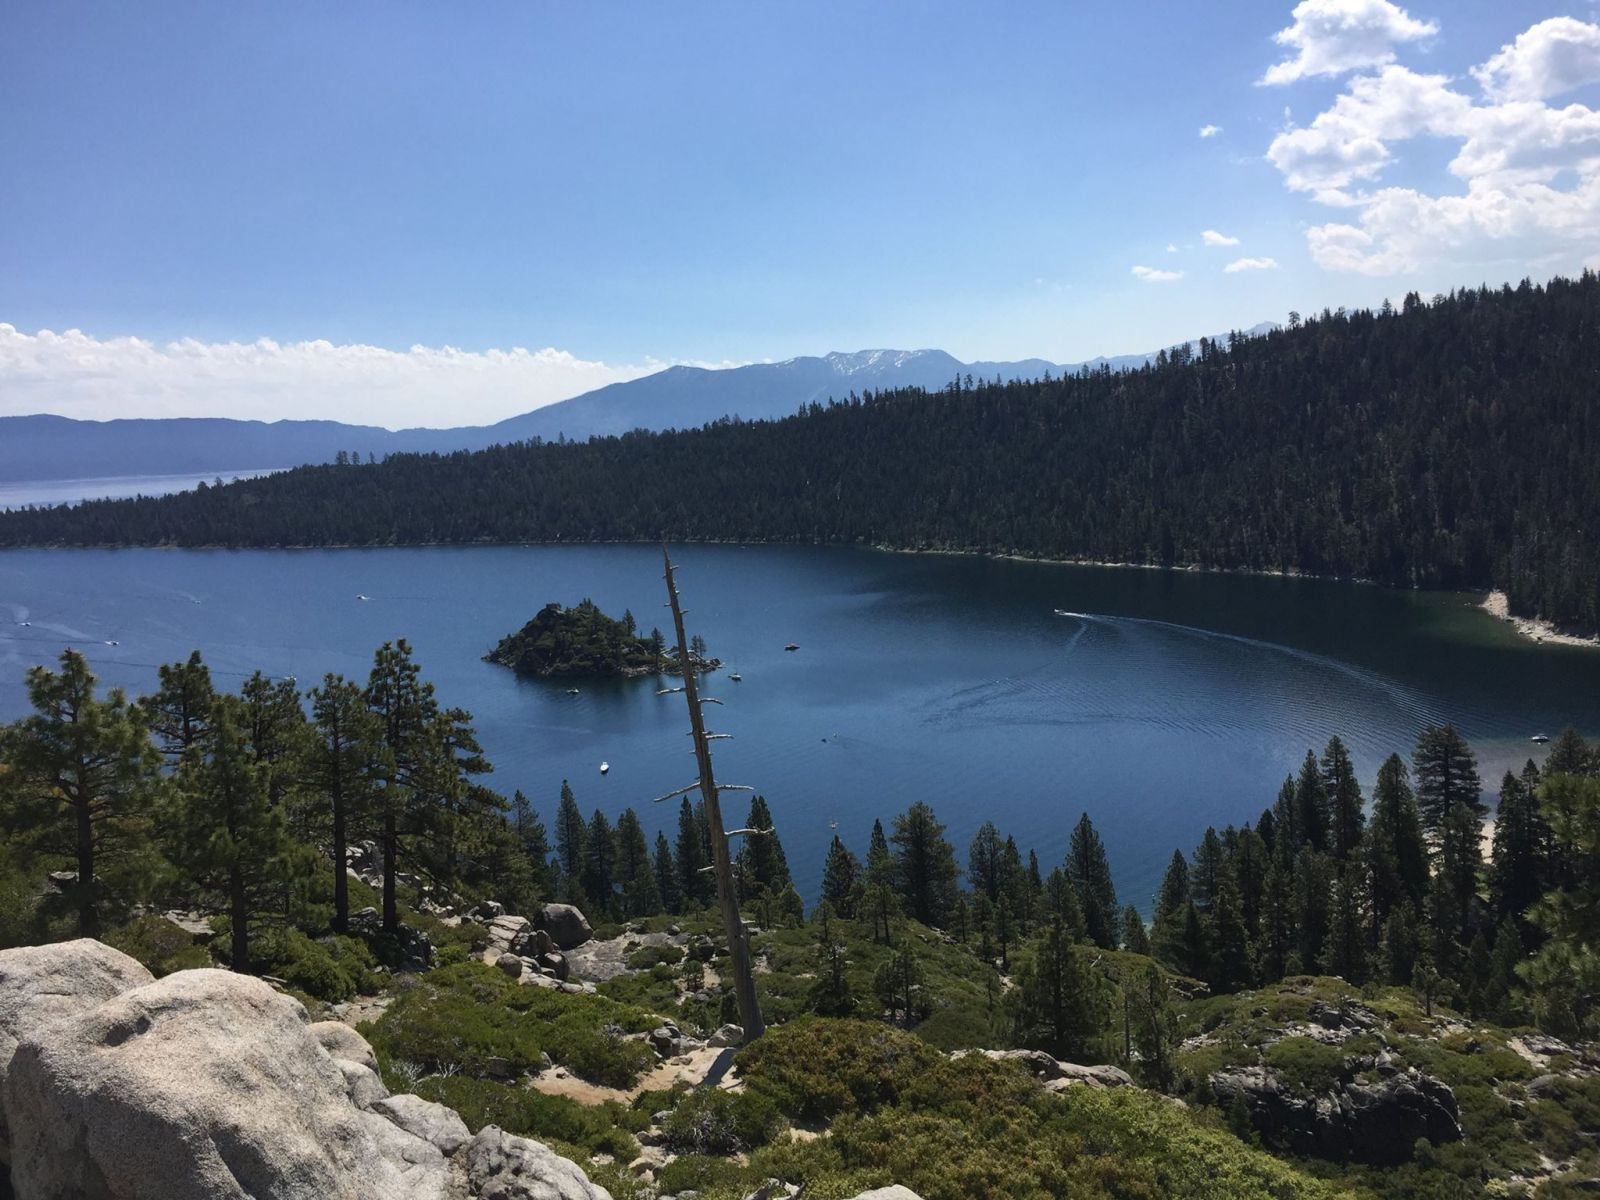 Emerald Bay State Park in Lake Tahoe